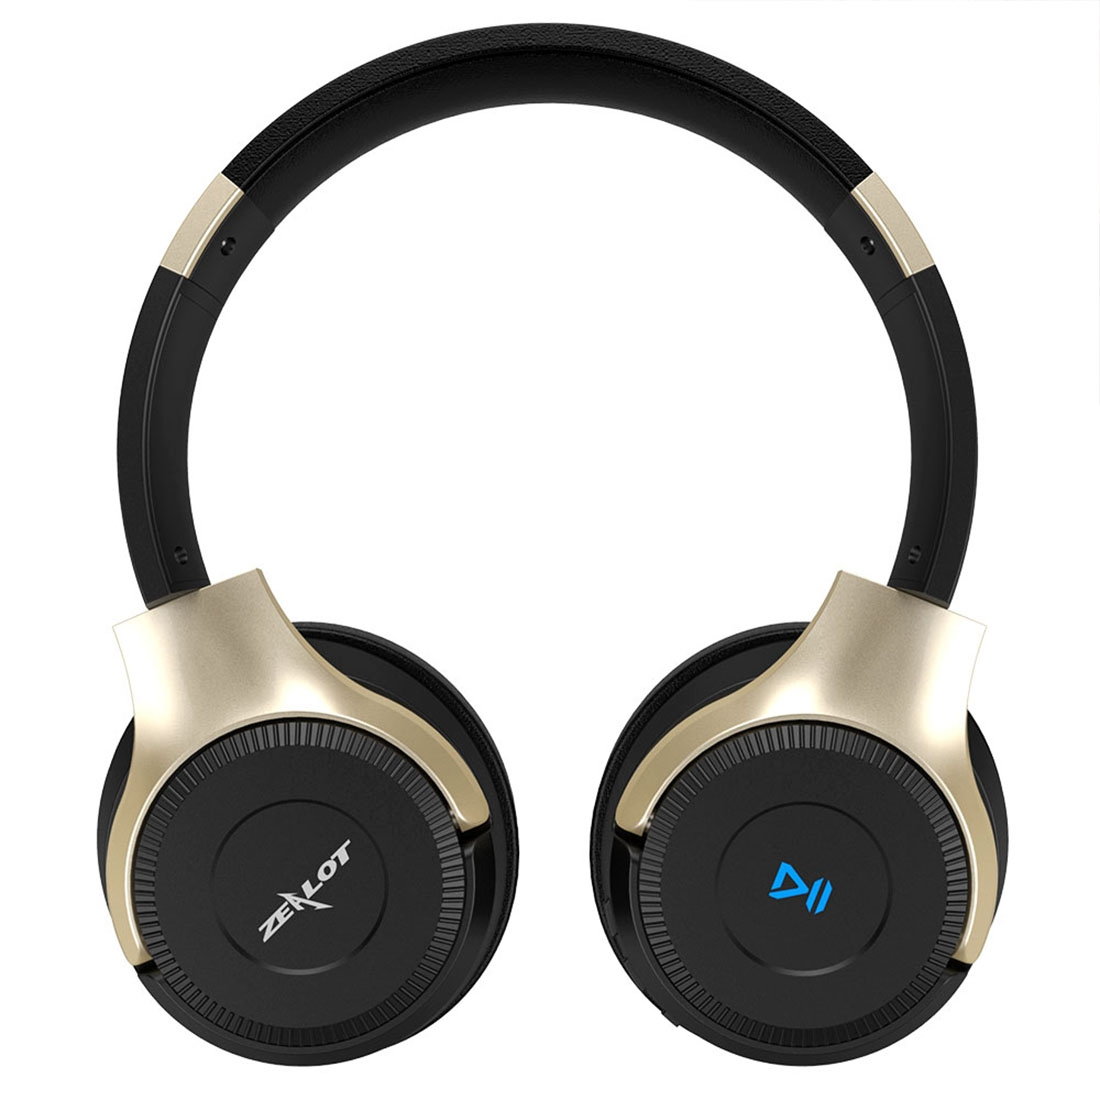 c42d259c953 ZEALOT B26T Stereo Wired Wireless Bluetooth 4.0 Subwoofer Headset with  3.5mm Universal Audio Cable Jack